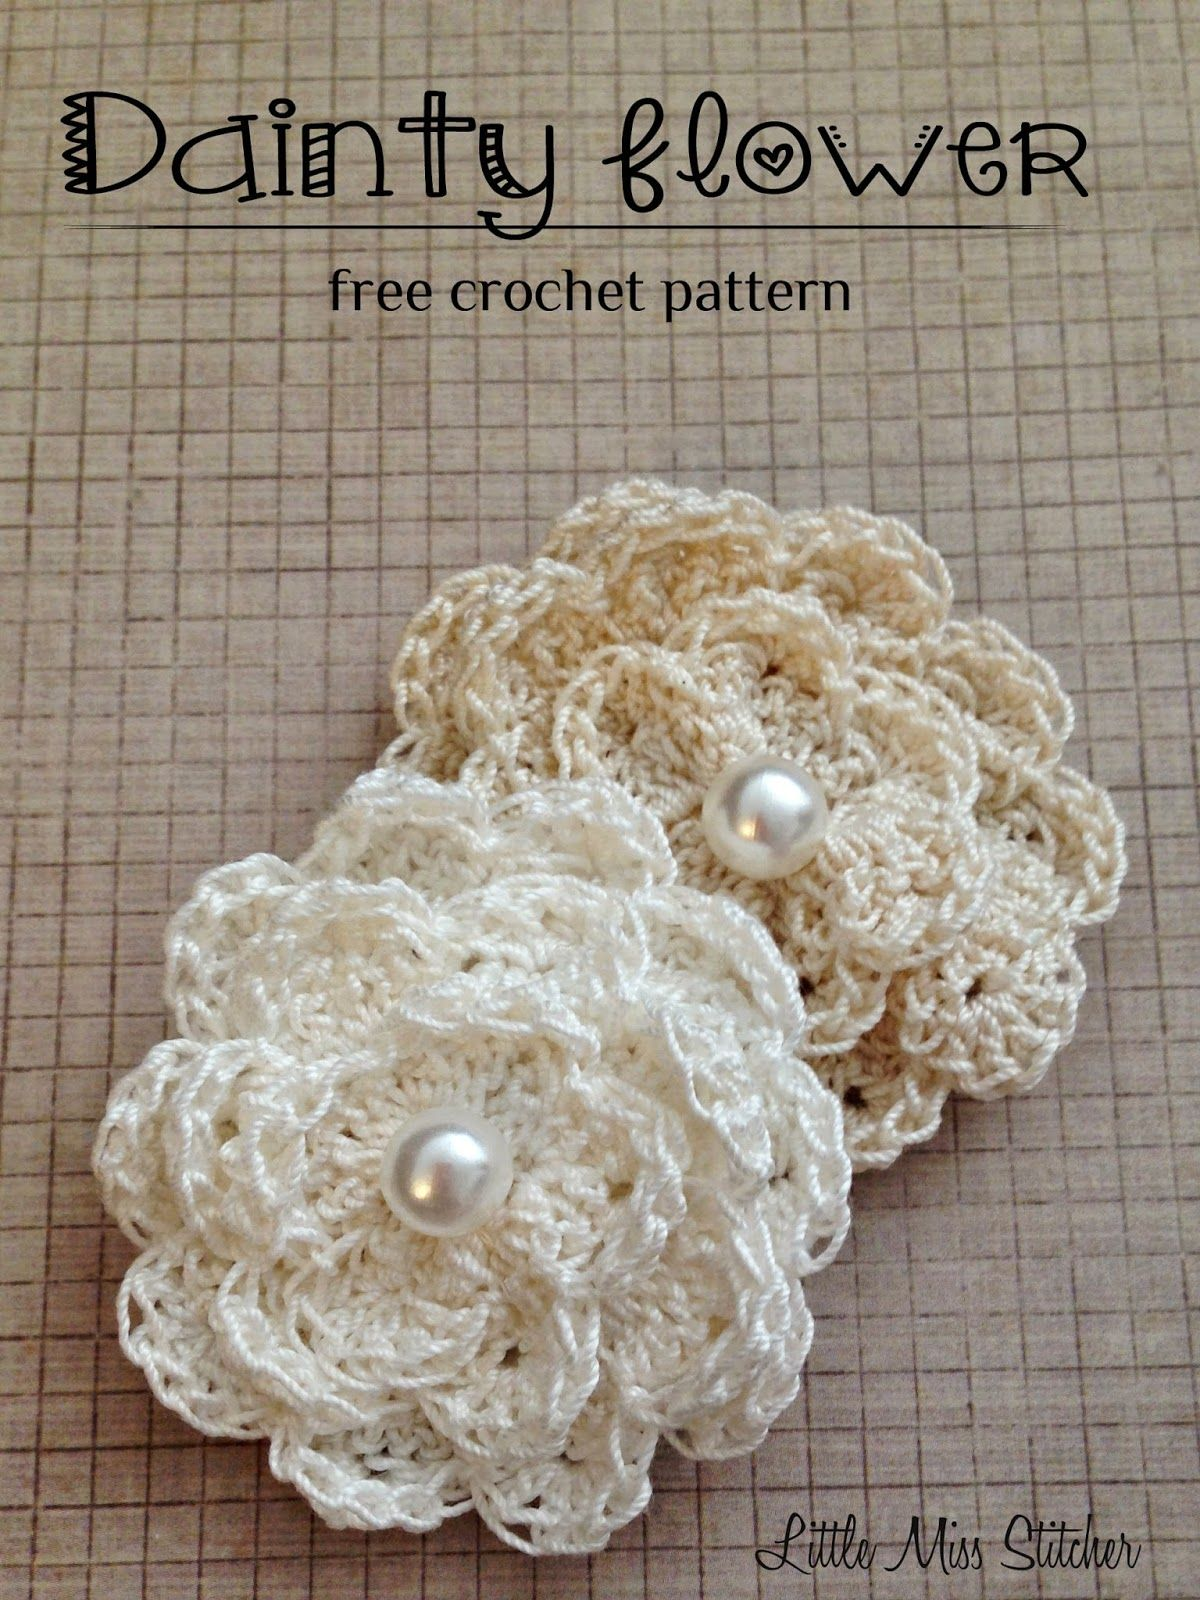 Dainty DIY Crochet Flowers With Free Pattern | Pinterest | Crochet ...